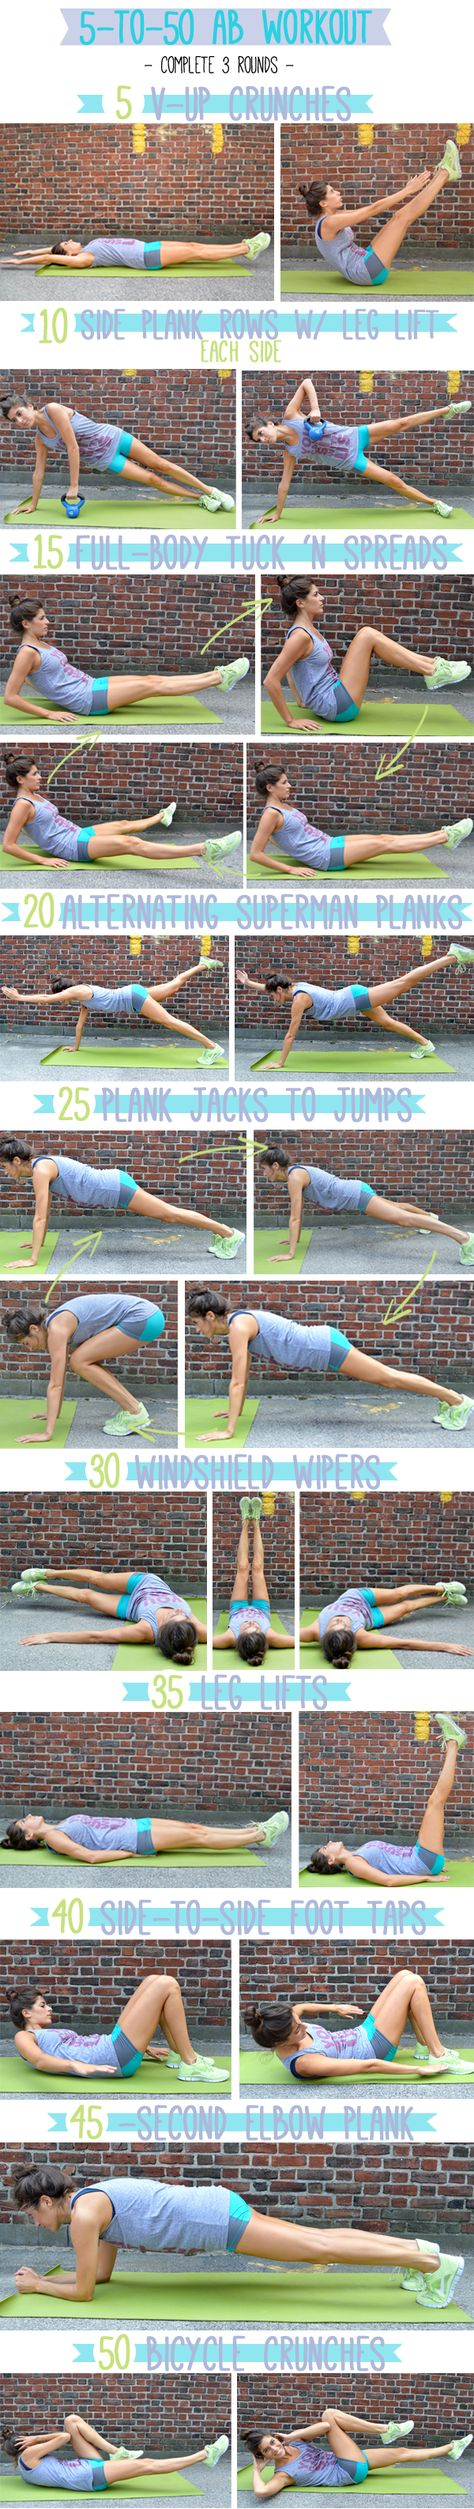 5 to 50 ab workout #fitness #workout